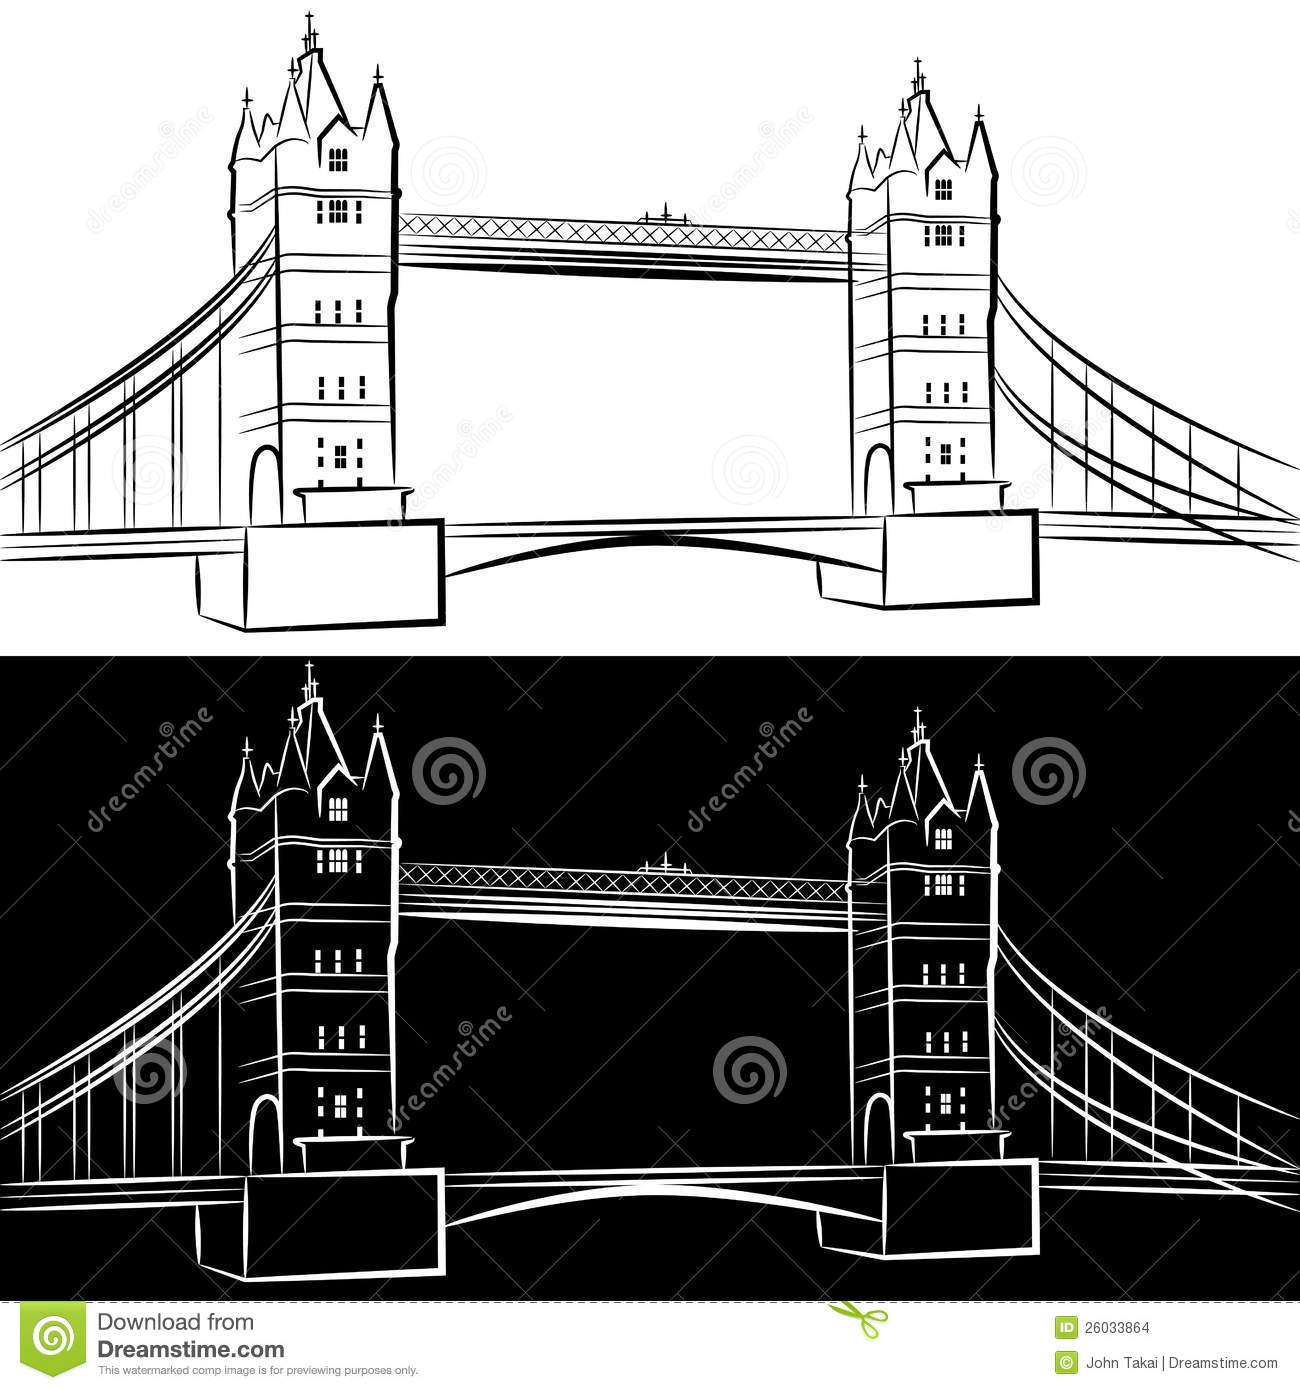 united states map puzzle for kids with Stock Images London Bridge Drawing Image26033864 on Stock Illustration Rooster Animal Cartoon Illustration Children Colorful Vector Image60975657 also Stock Illustration Put All Together Puzzle Pieces Solve Mystery Problem Solving Seeing Full Total Picture Image56609285 also Printable Word Search Puzzles likewise B000GKAU1I additionally 2.